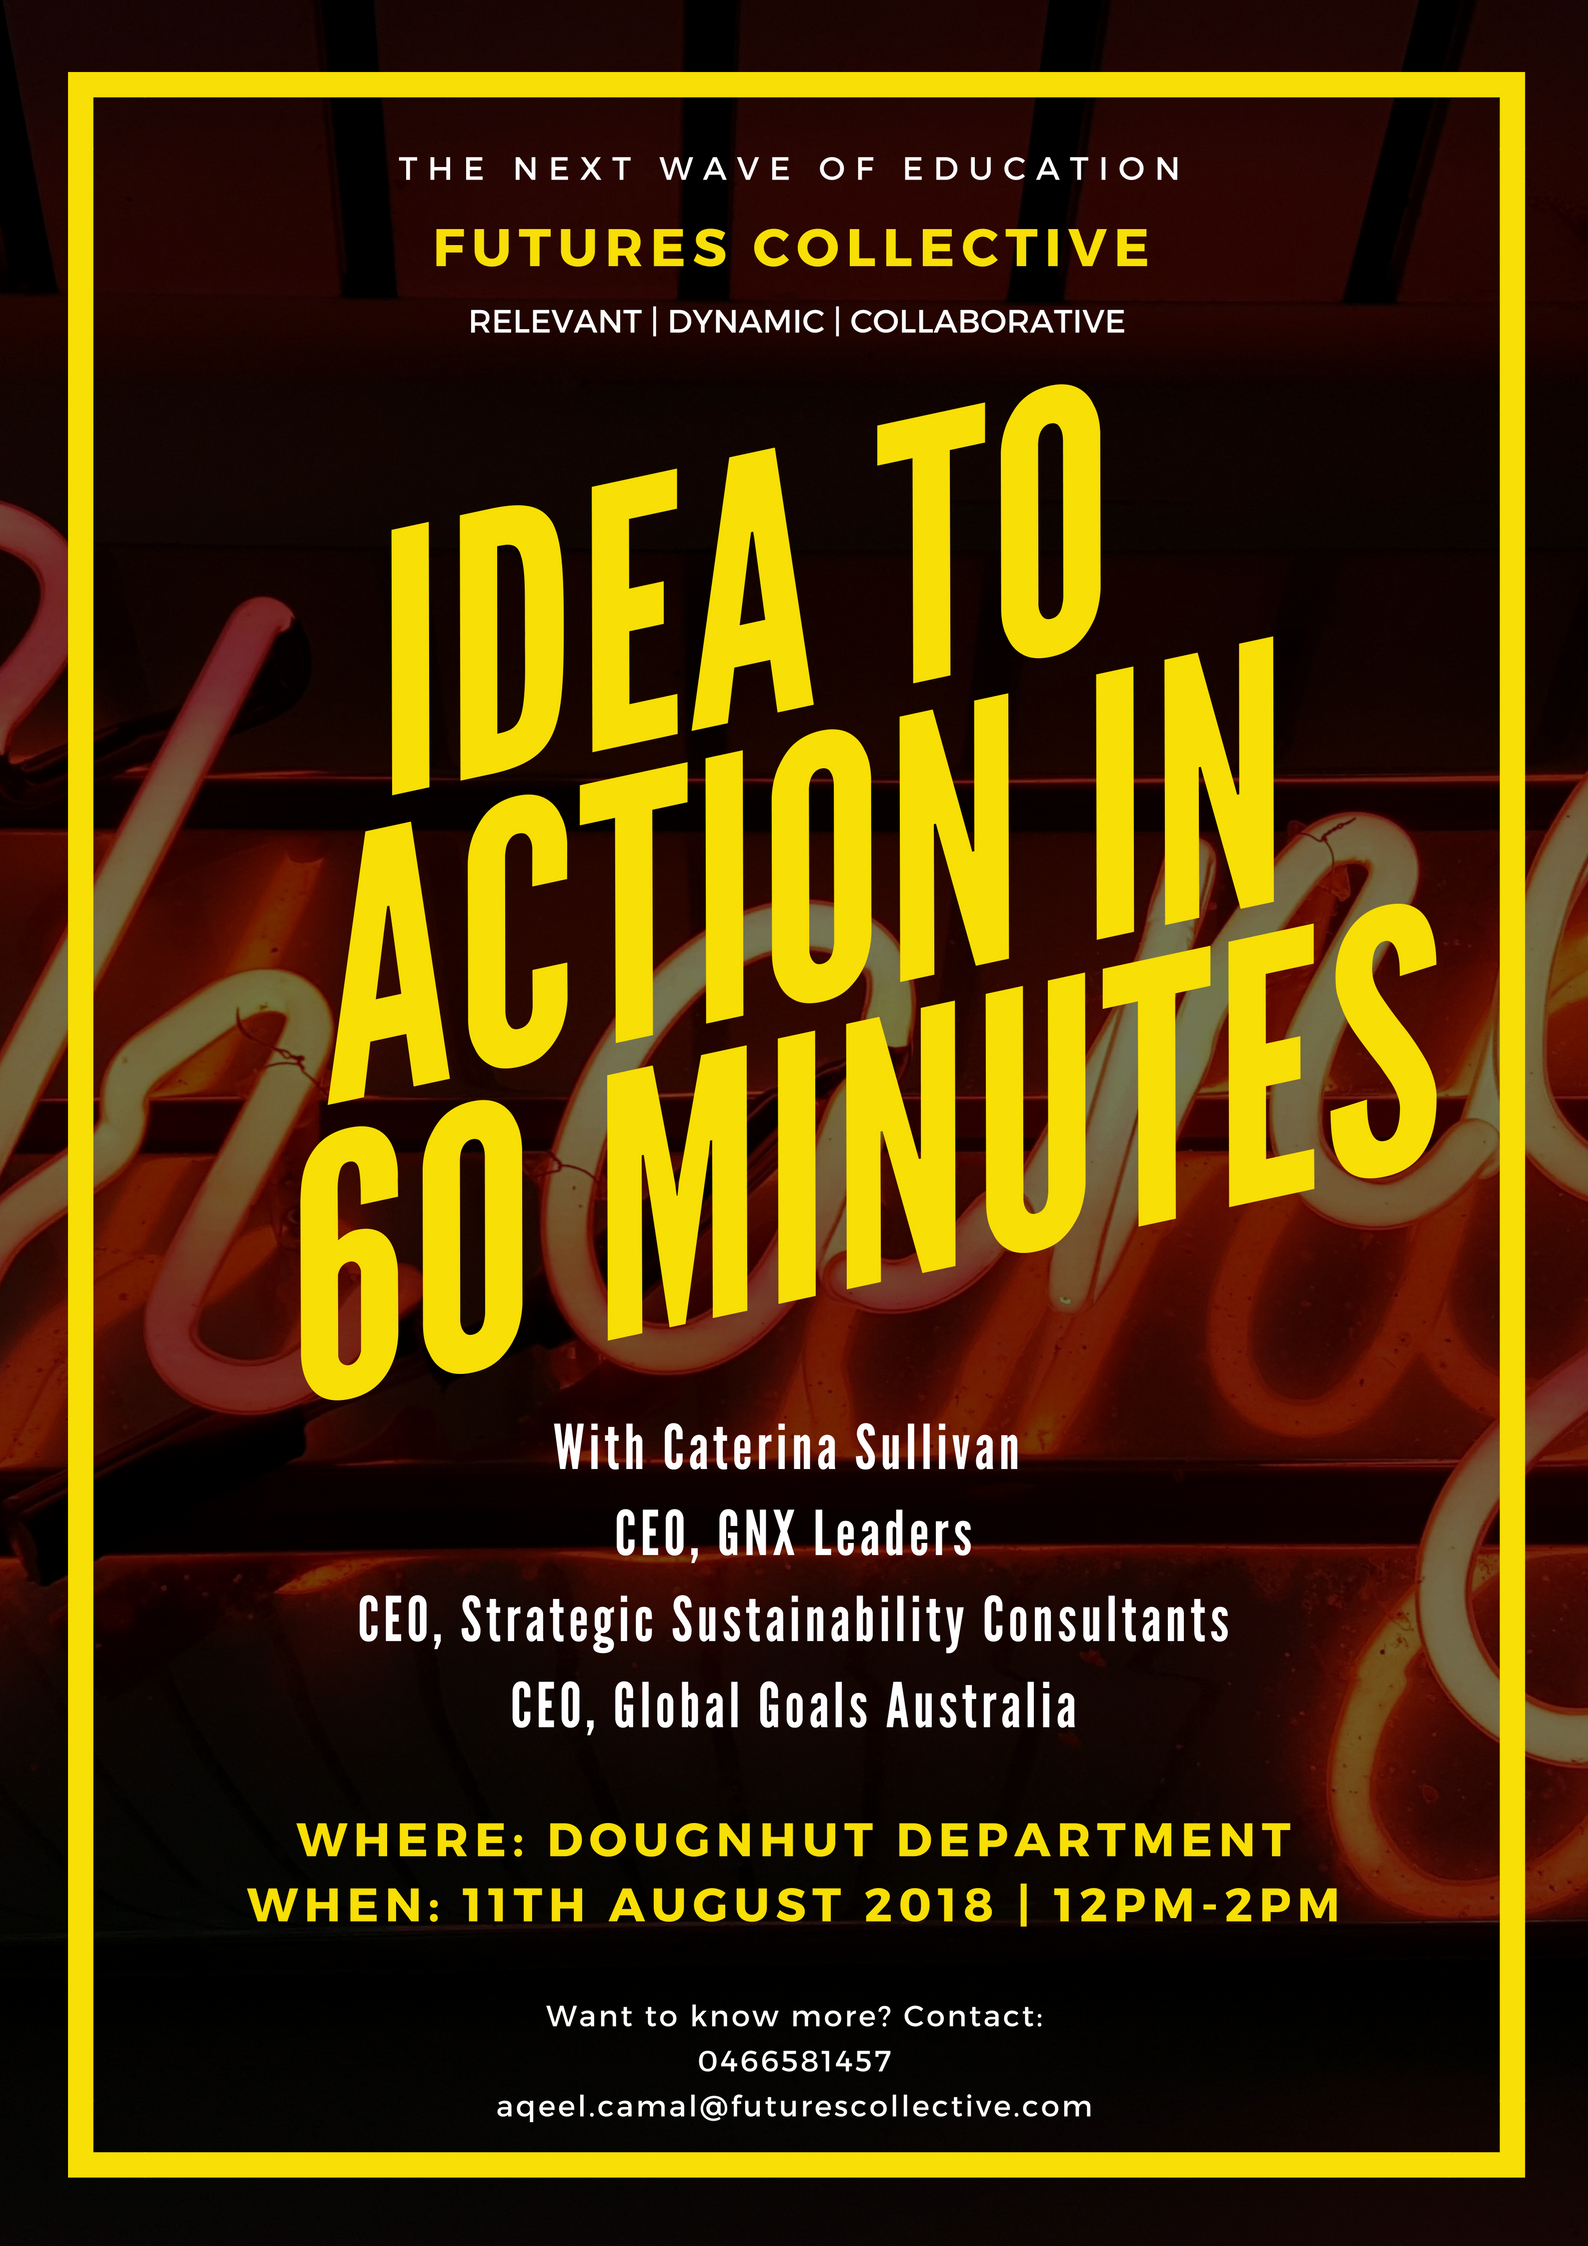 Idea to action in 60 minutes.jpg